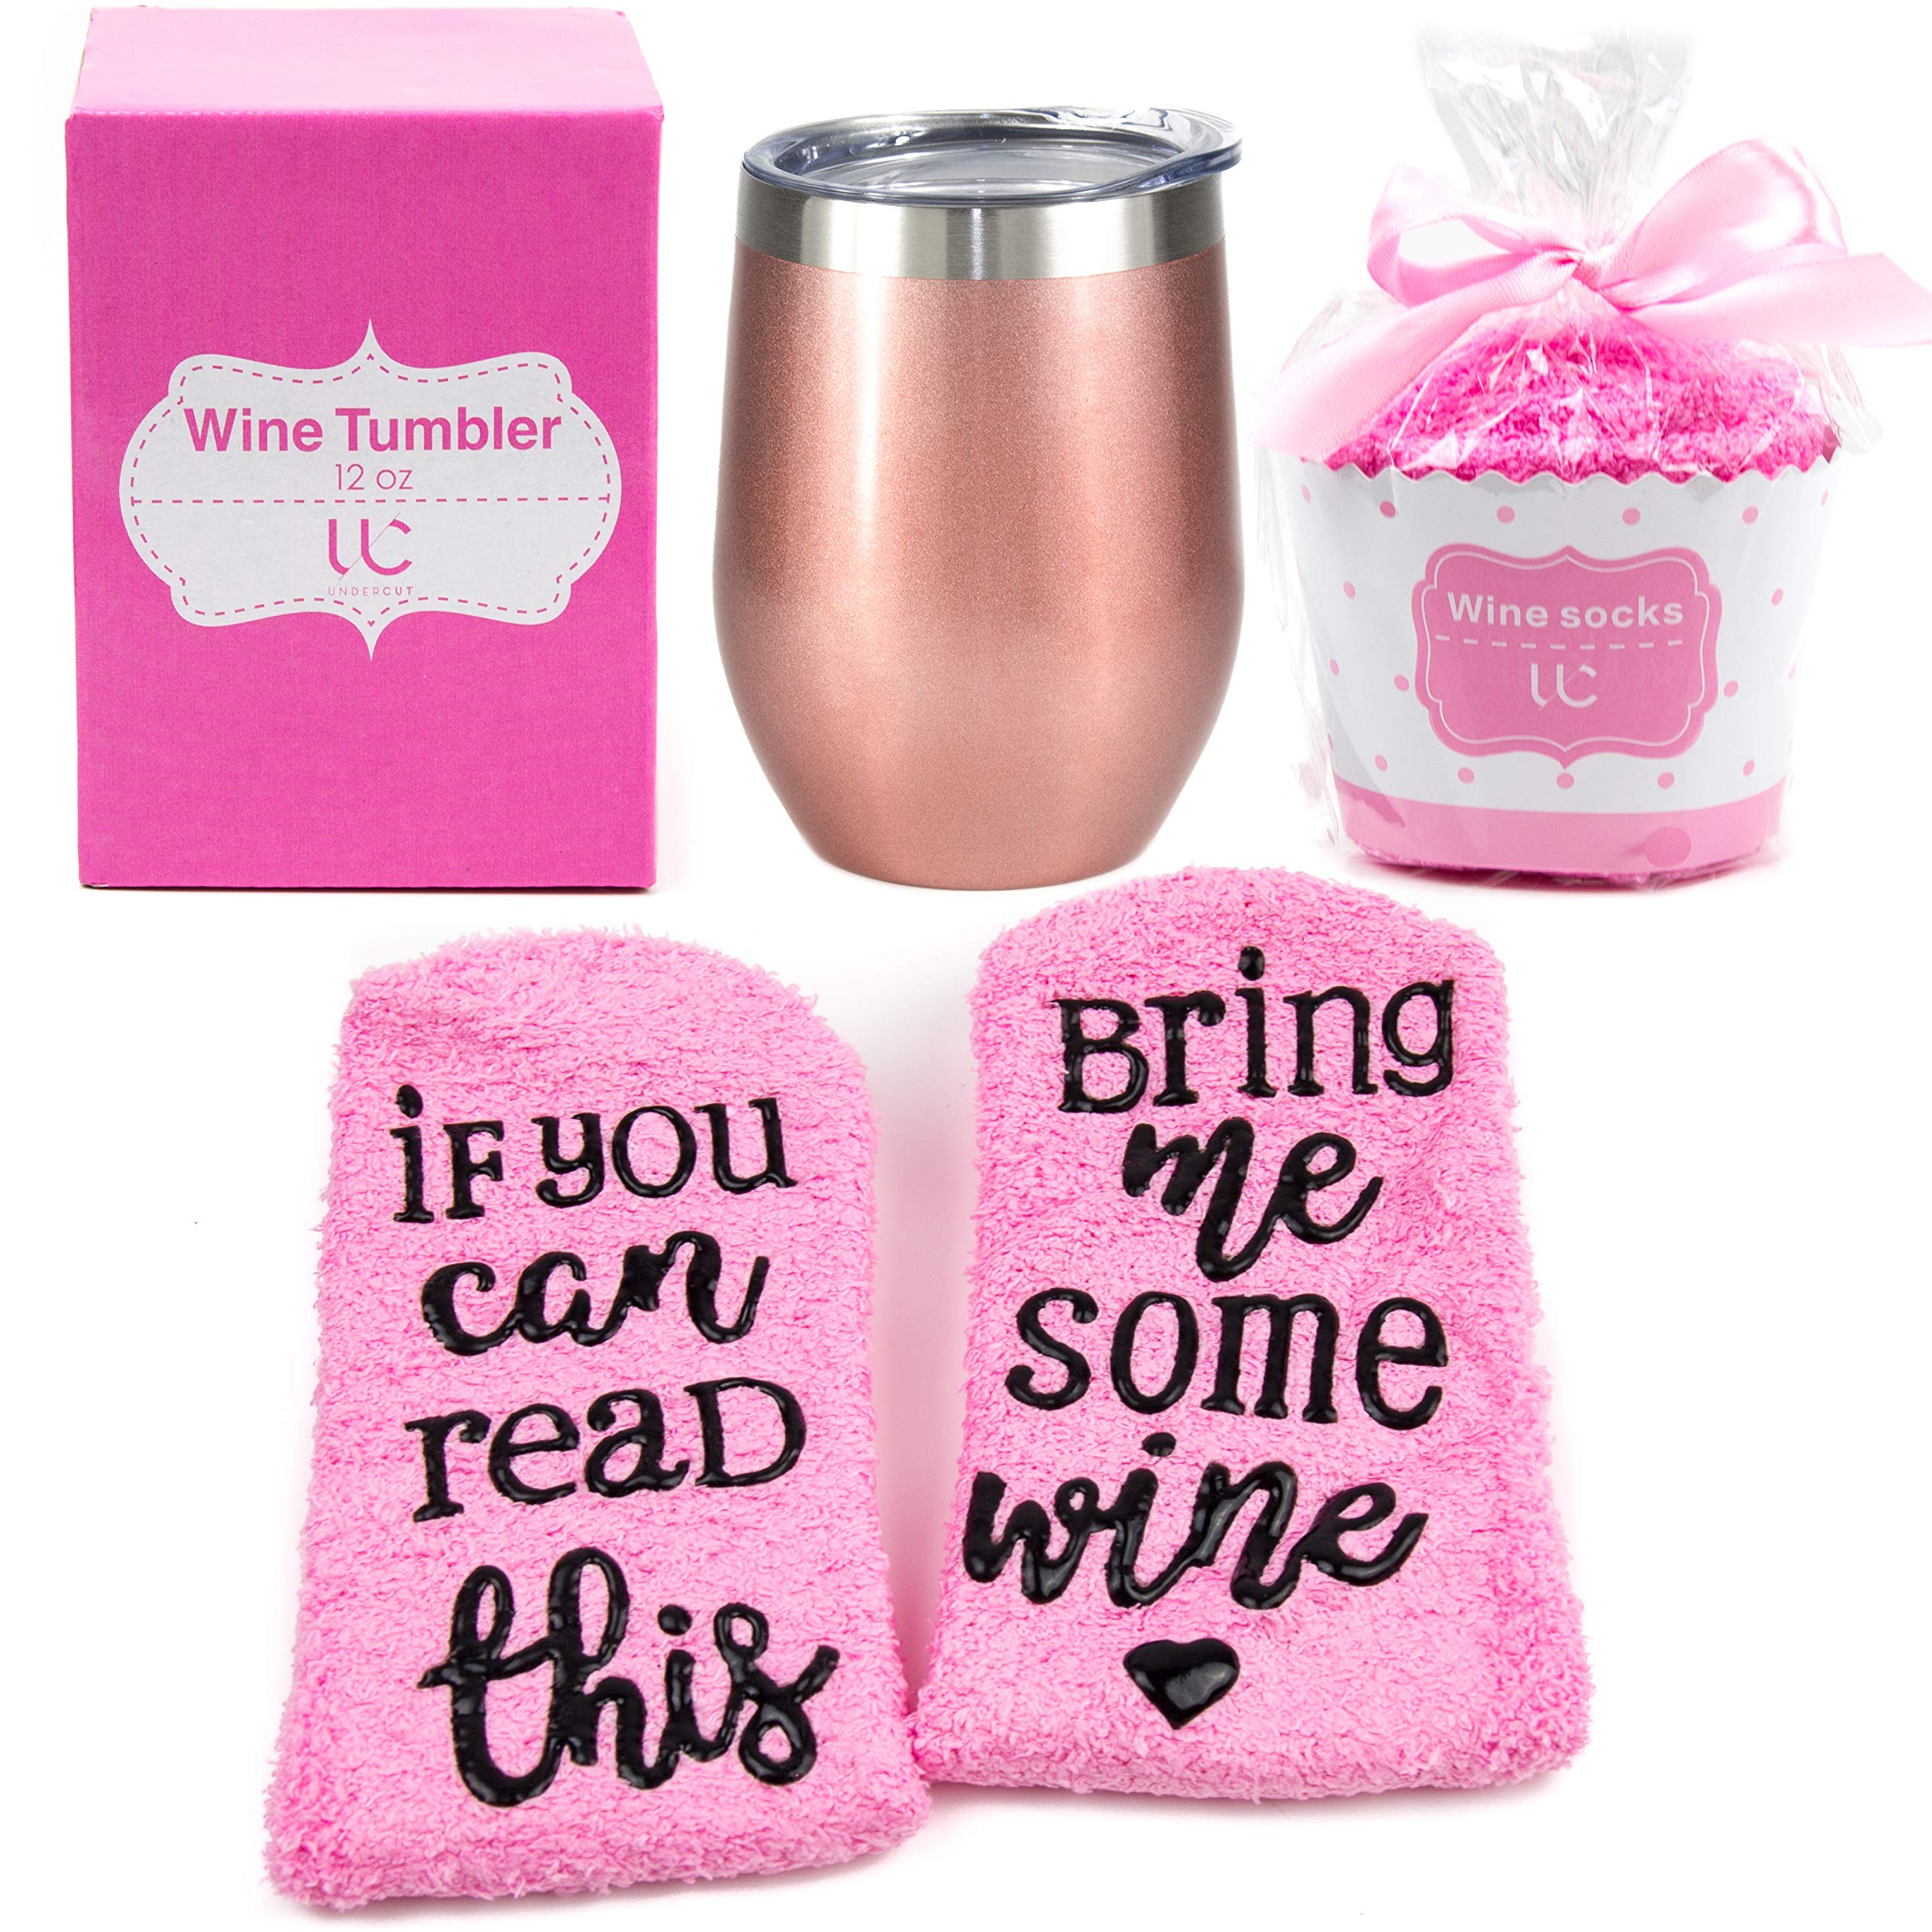 Stainless Steel 12 oz Wine Tumbler + Cupcake Wine Socks Gift Set | Double Insulated Stemless Wine Tumbler with Lid, Rose Gold | Includes Funny Socks''If You Can Read This, Bring Me Some Wine''